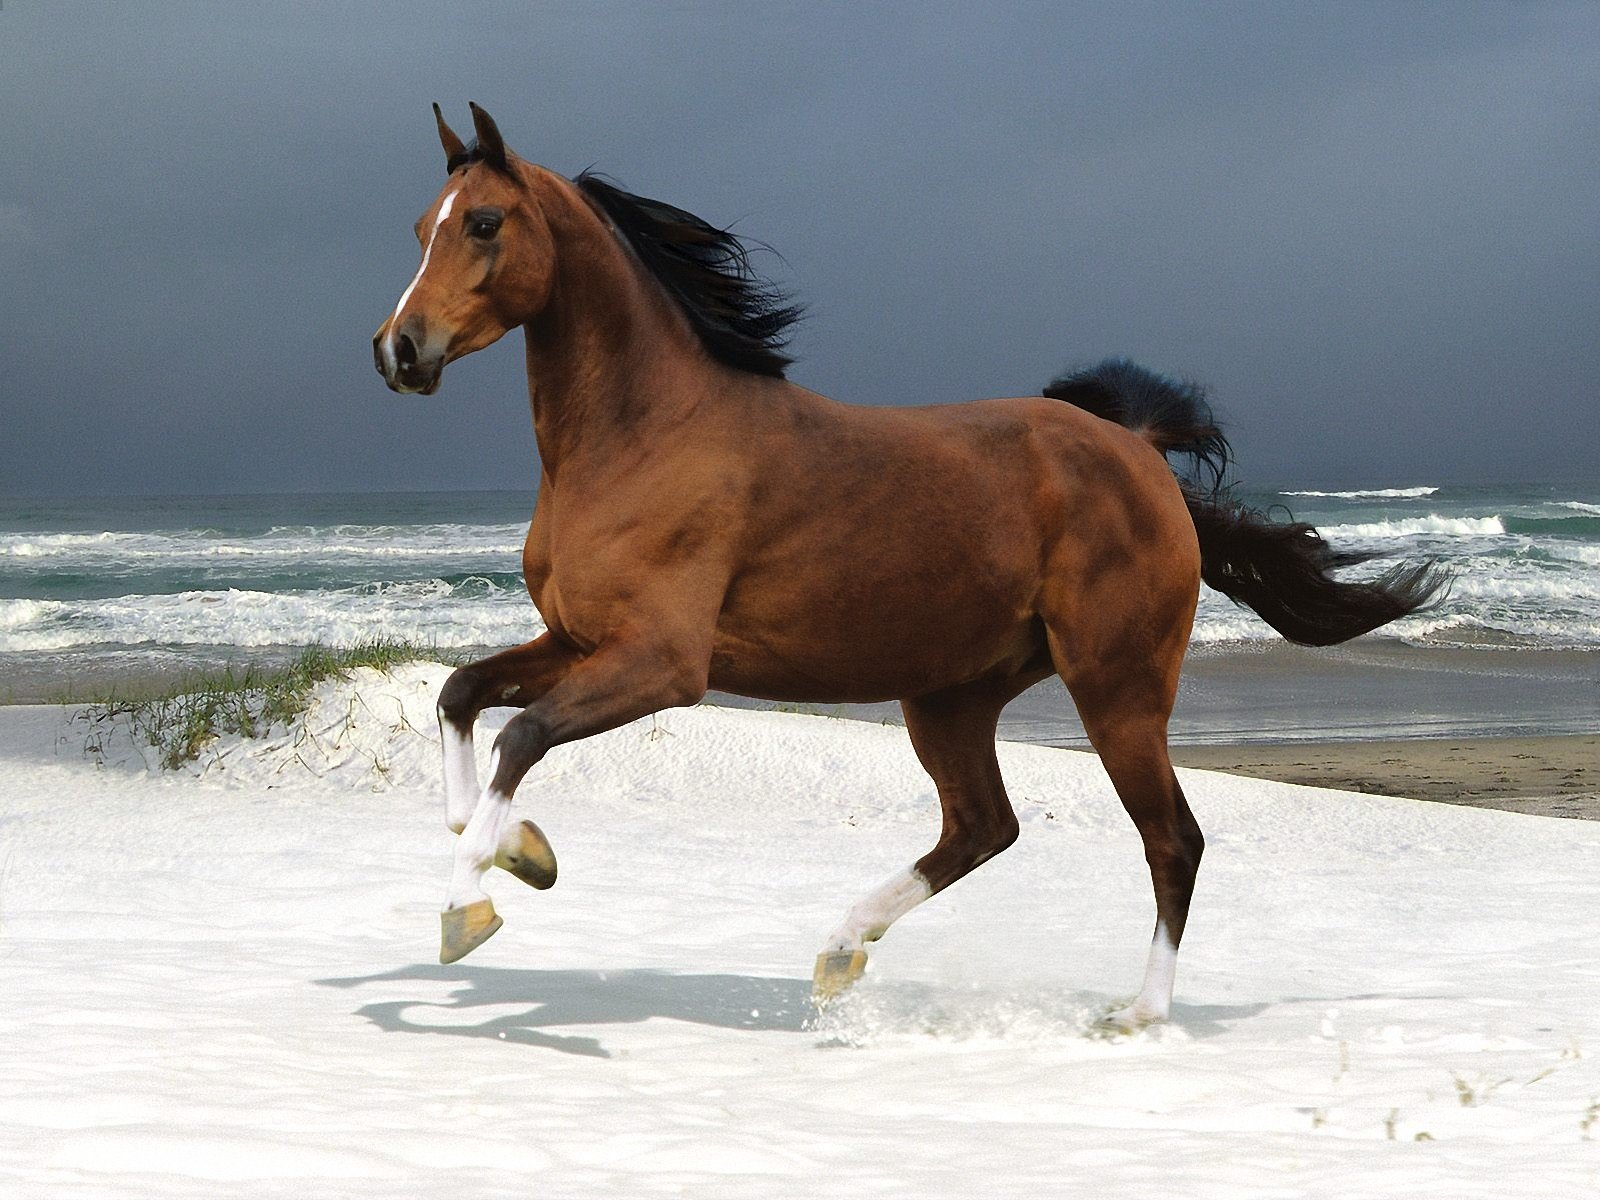 Great   Wallpaper Horse National Geographic - horse-wallpapers-11  Gallery_604334.jpg